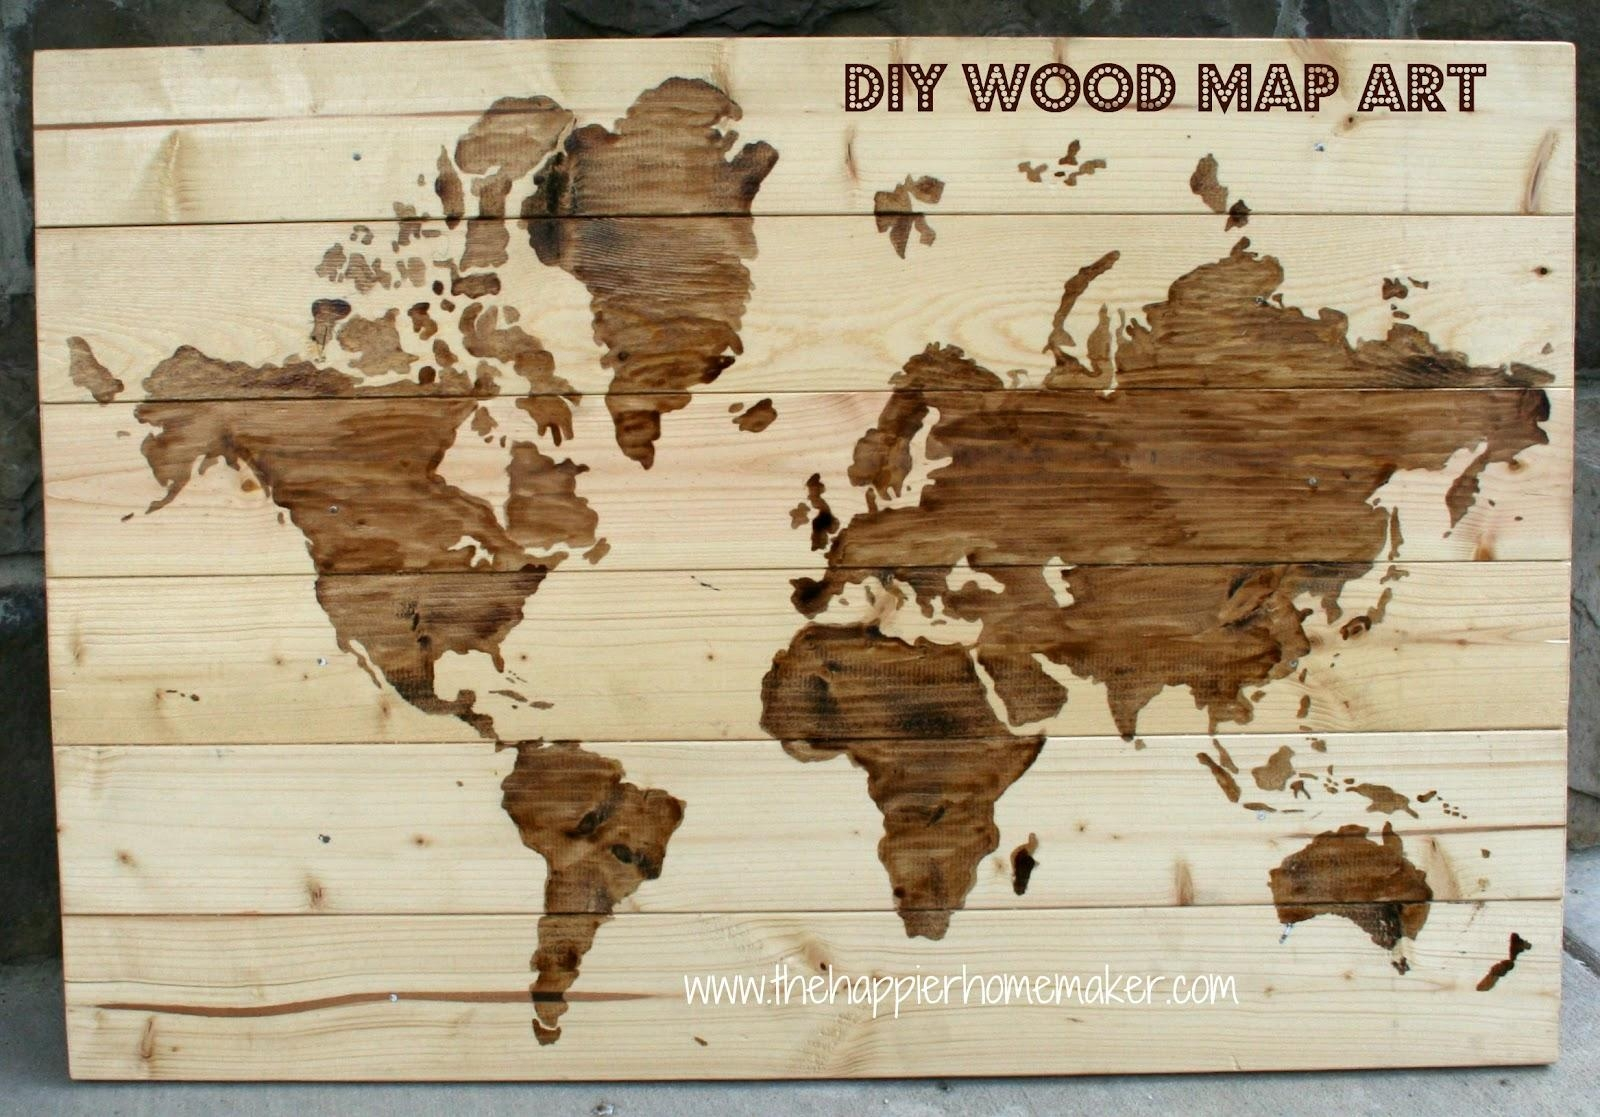 Diy Wooden World Map Art | The Happier Homemaker In Stained Wood Wall Art (Image 7 of 20)